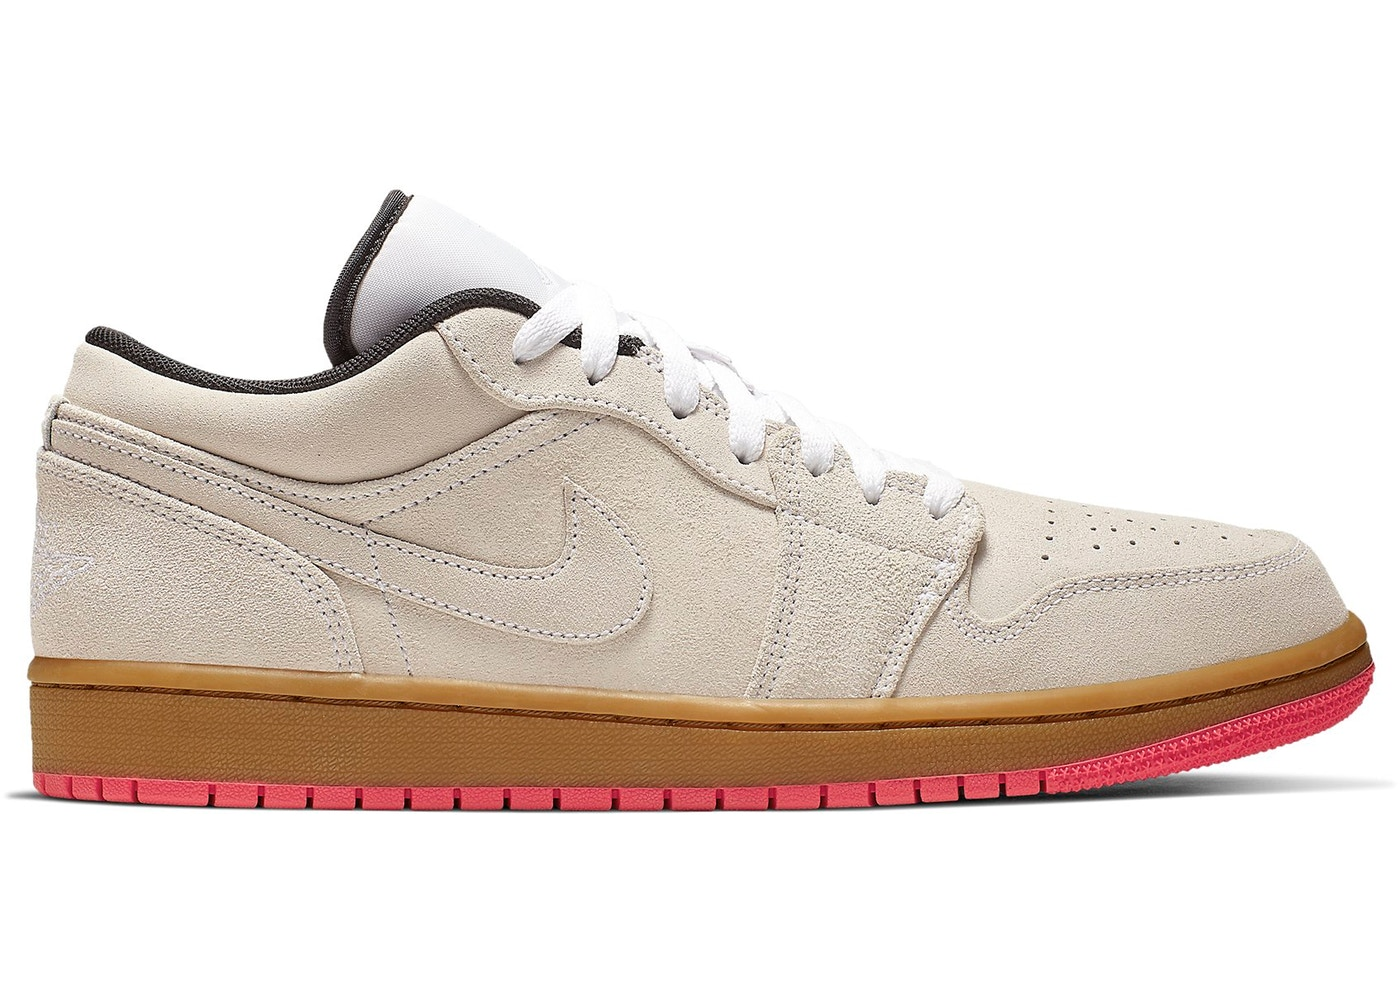 ef90a25c680 Sell. or Ask. Size: 15. View All Bids. Jordan 1 Low White Gum Hyper Pink